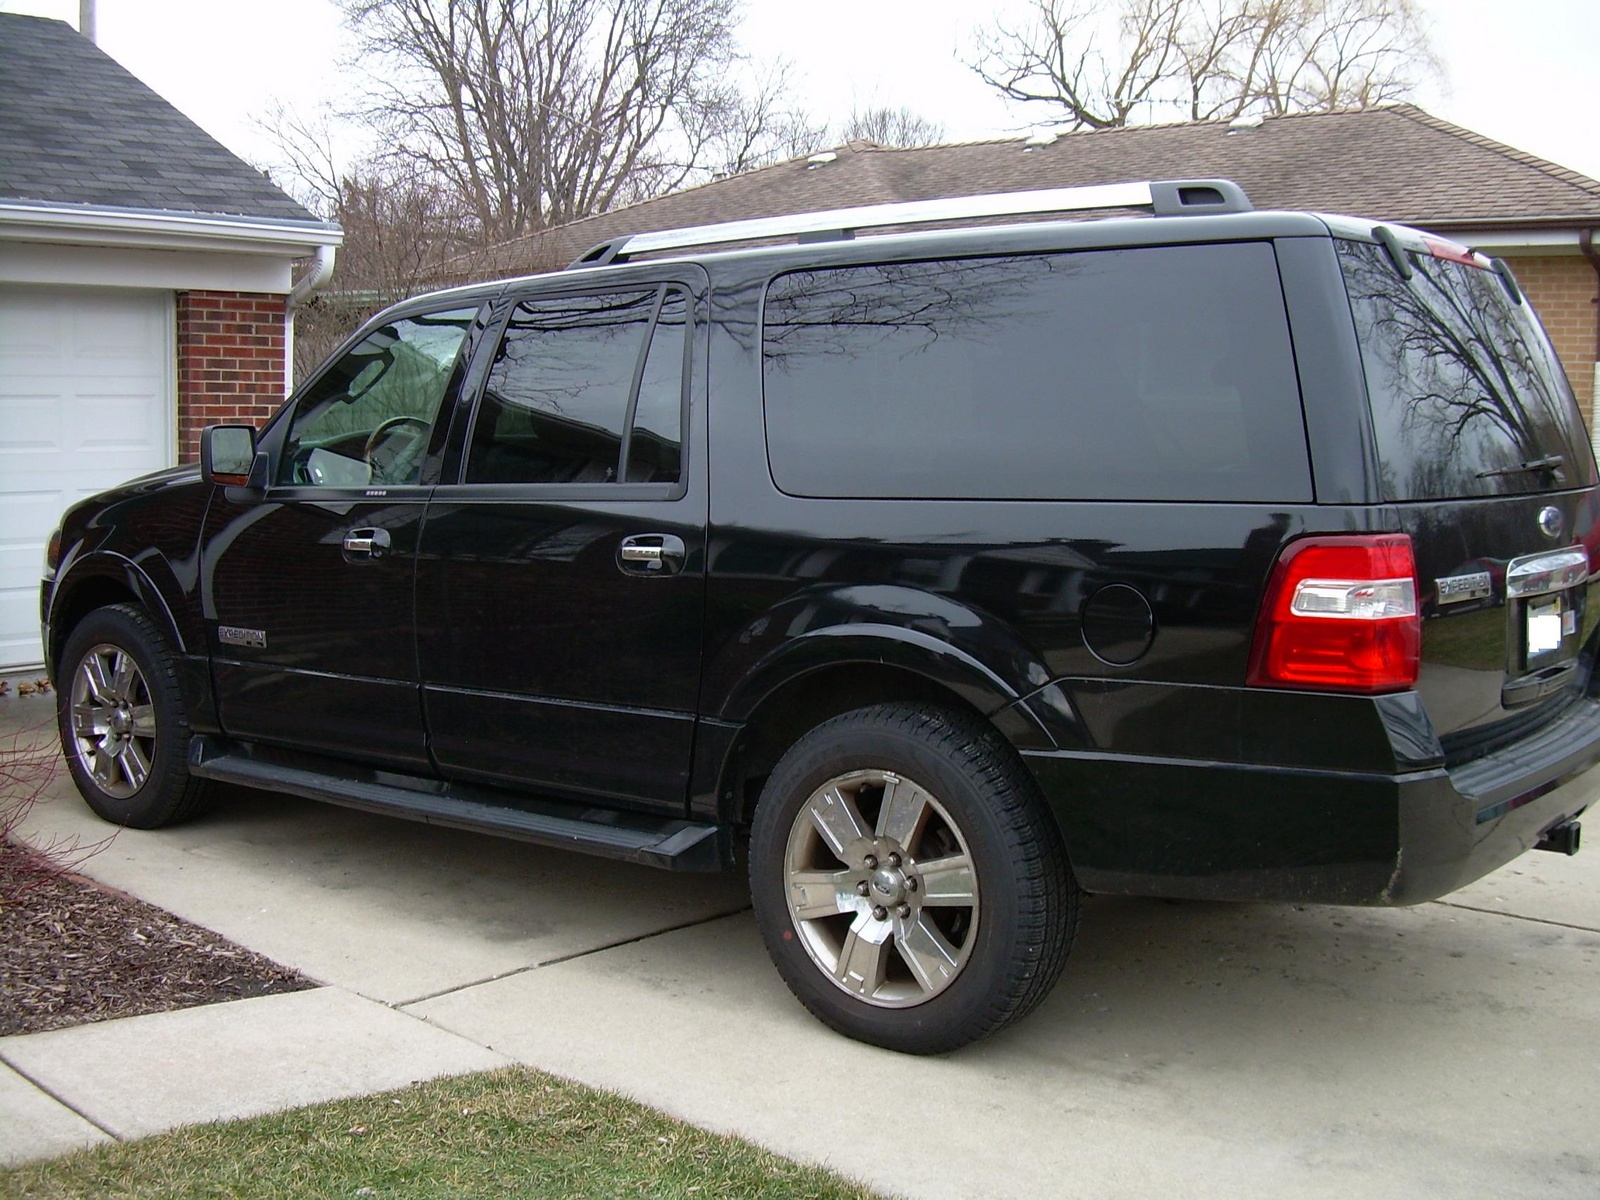 2007 Ford Expedition El Image 17